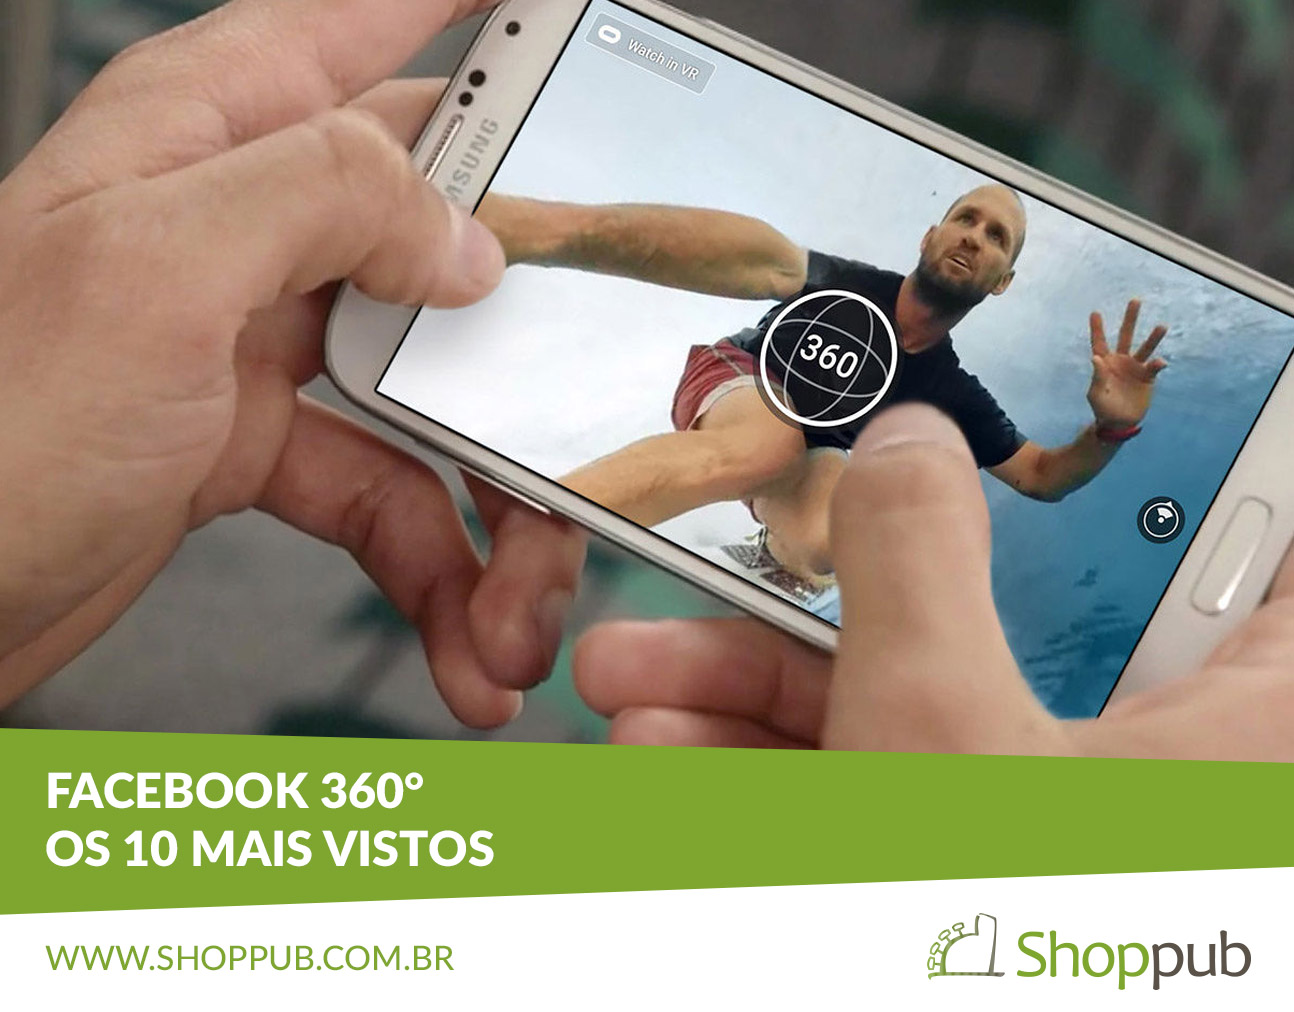 Facebook 360° - Os 10 mais vistos